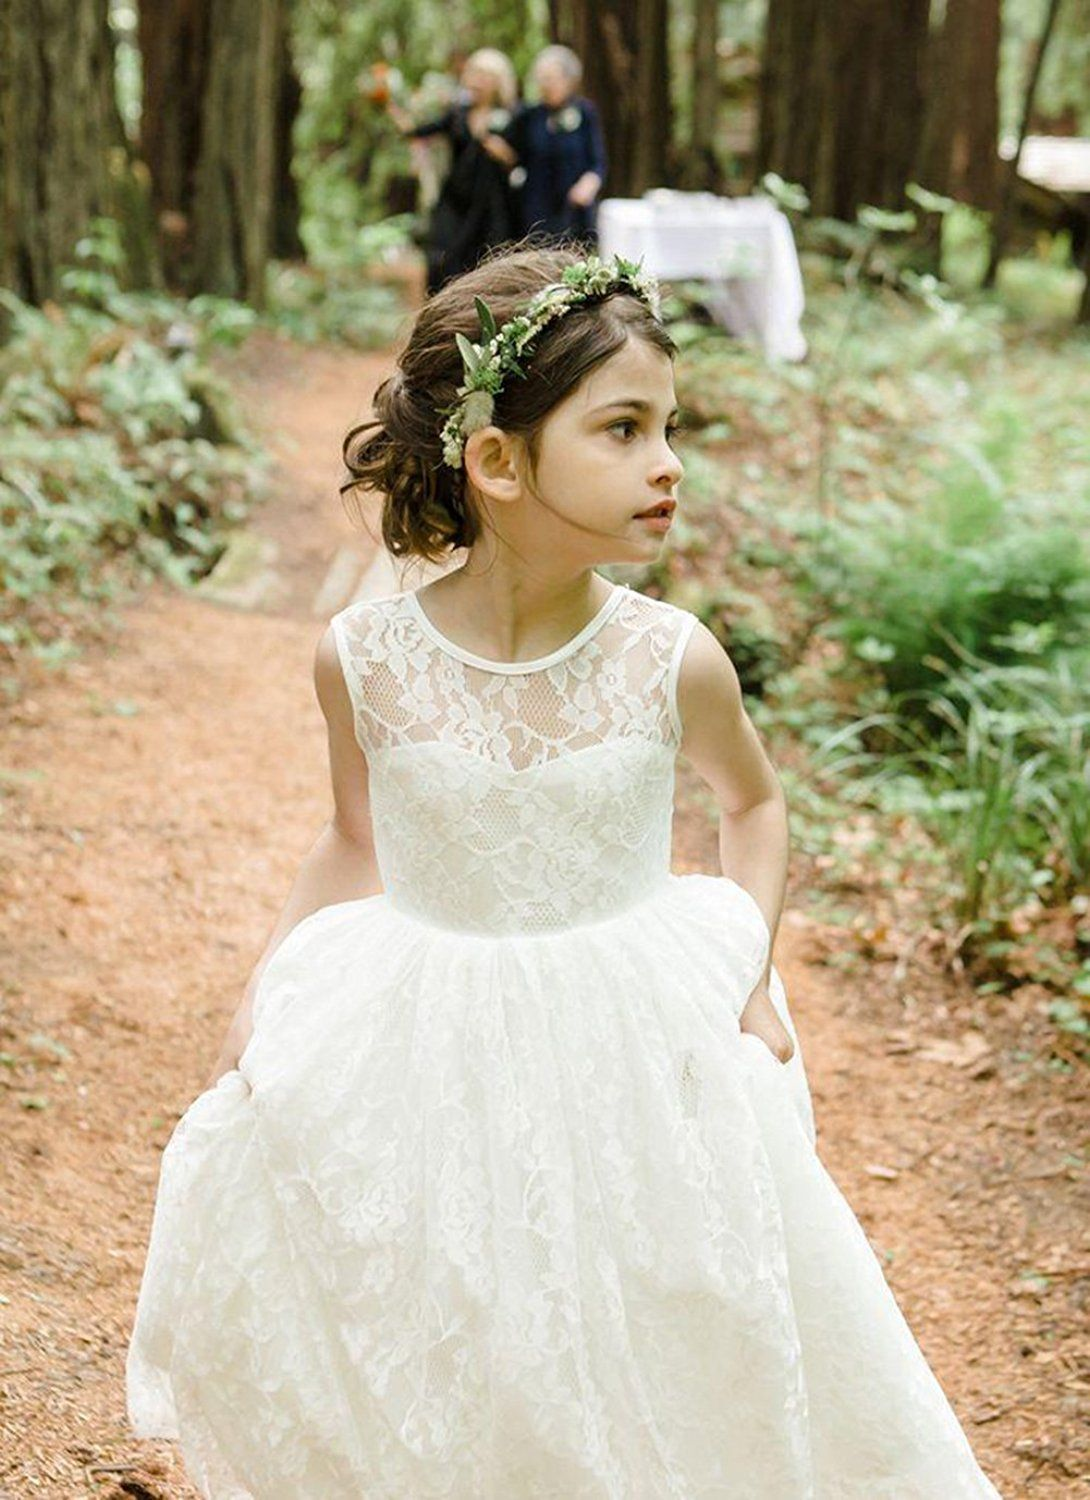 Girls wedding dress  Amazon Ikerenwedding Lace Flower Girl Wedding Dress Gorgeous